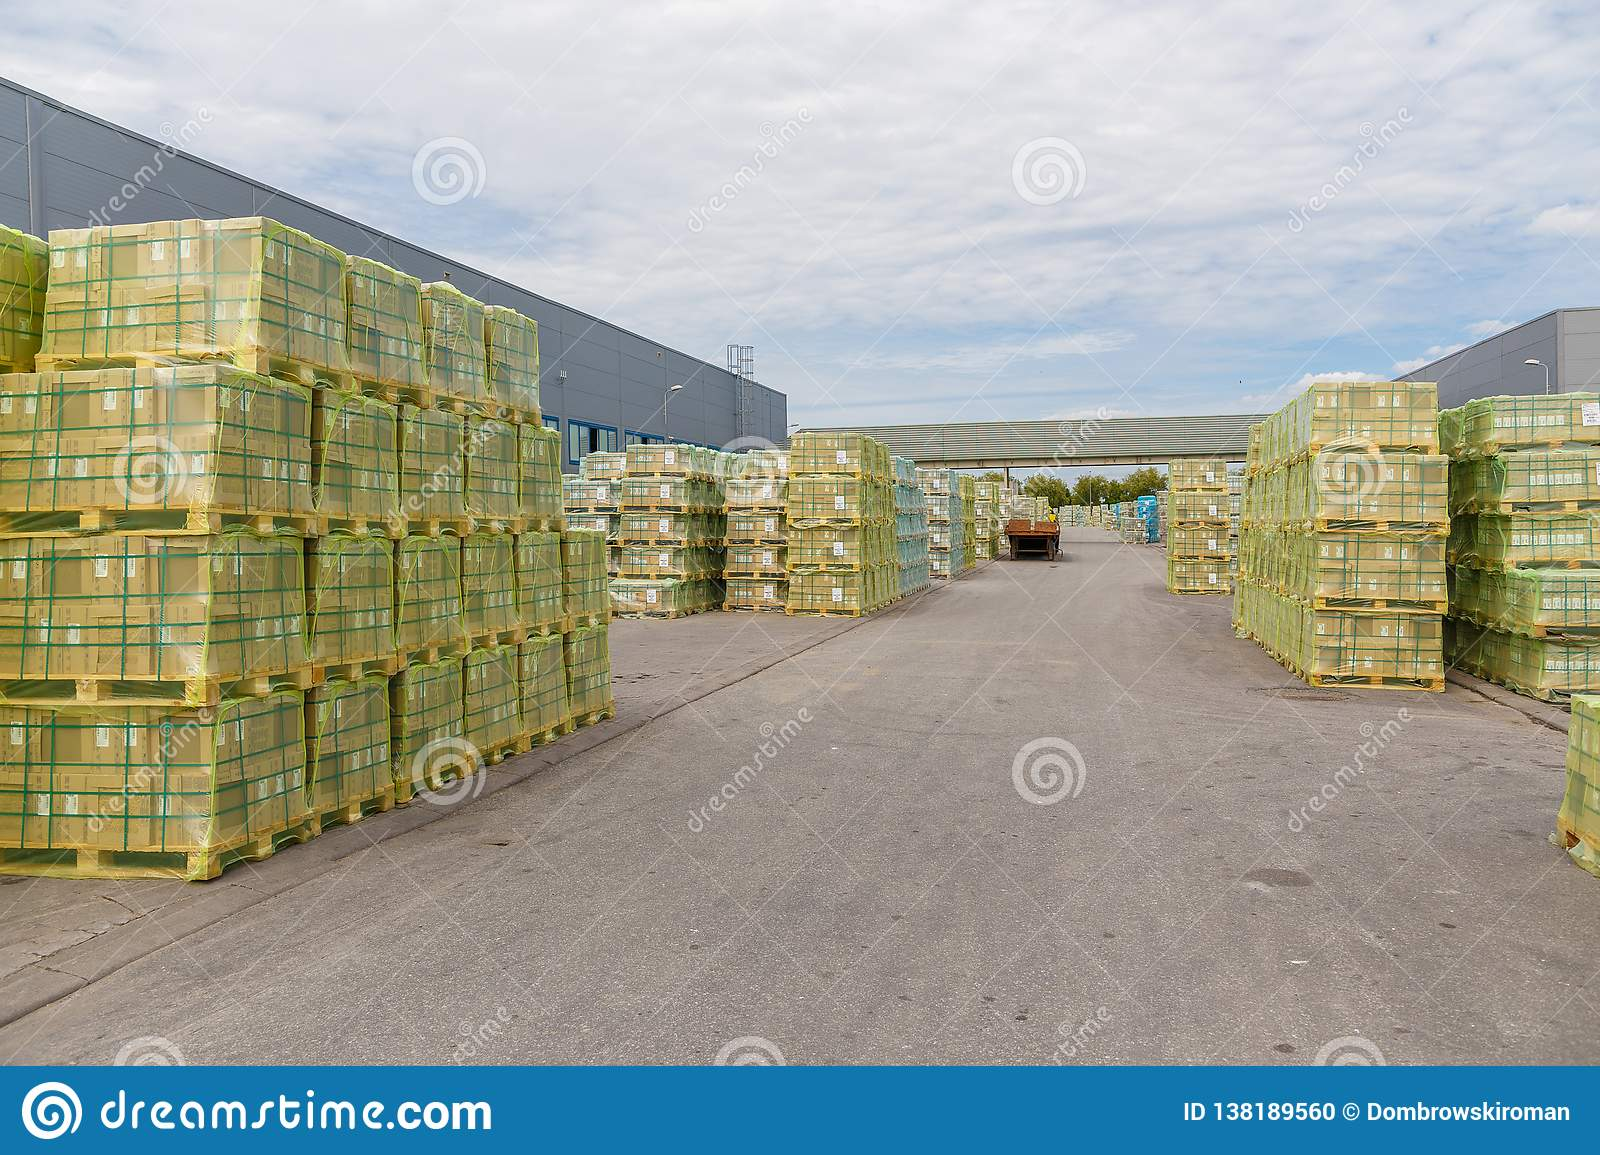 Shipment, logistics, delivery and product distribution-business industry. Storage warehouse with cardboard boxes with packed goods